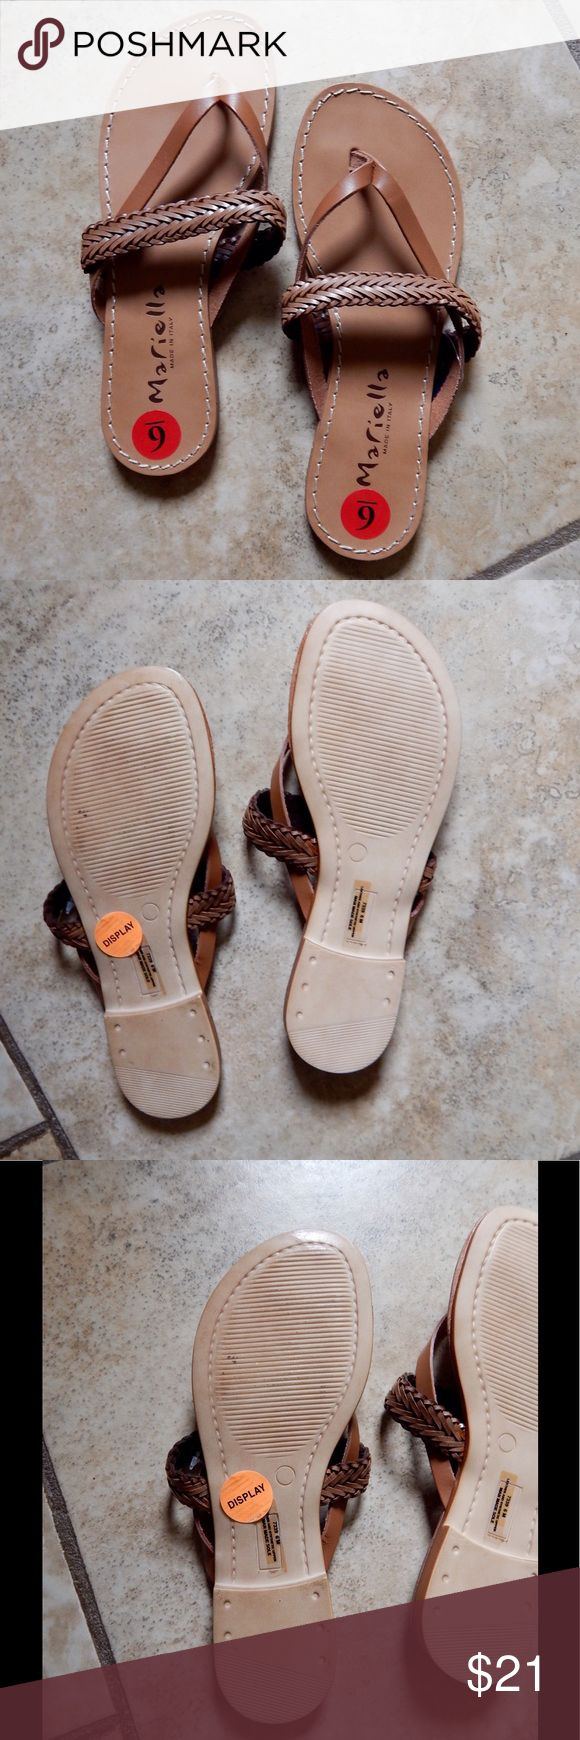 Mariella Brown Leather Flip Flops/Sandals Mariella Brown Leather Flip Flops.  Women's Size 6.  Italian.  Never worn, but the left sole shows dirt from being a display. Mariella Shoes Sandals